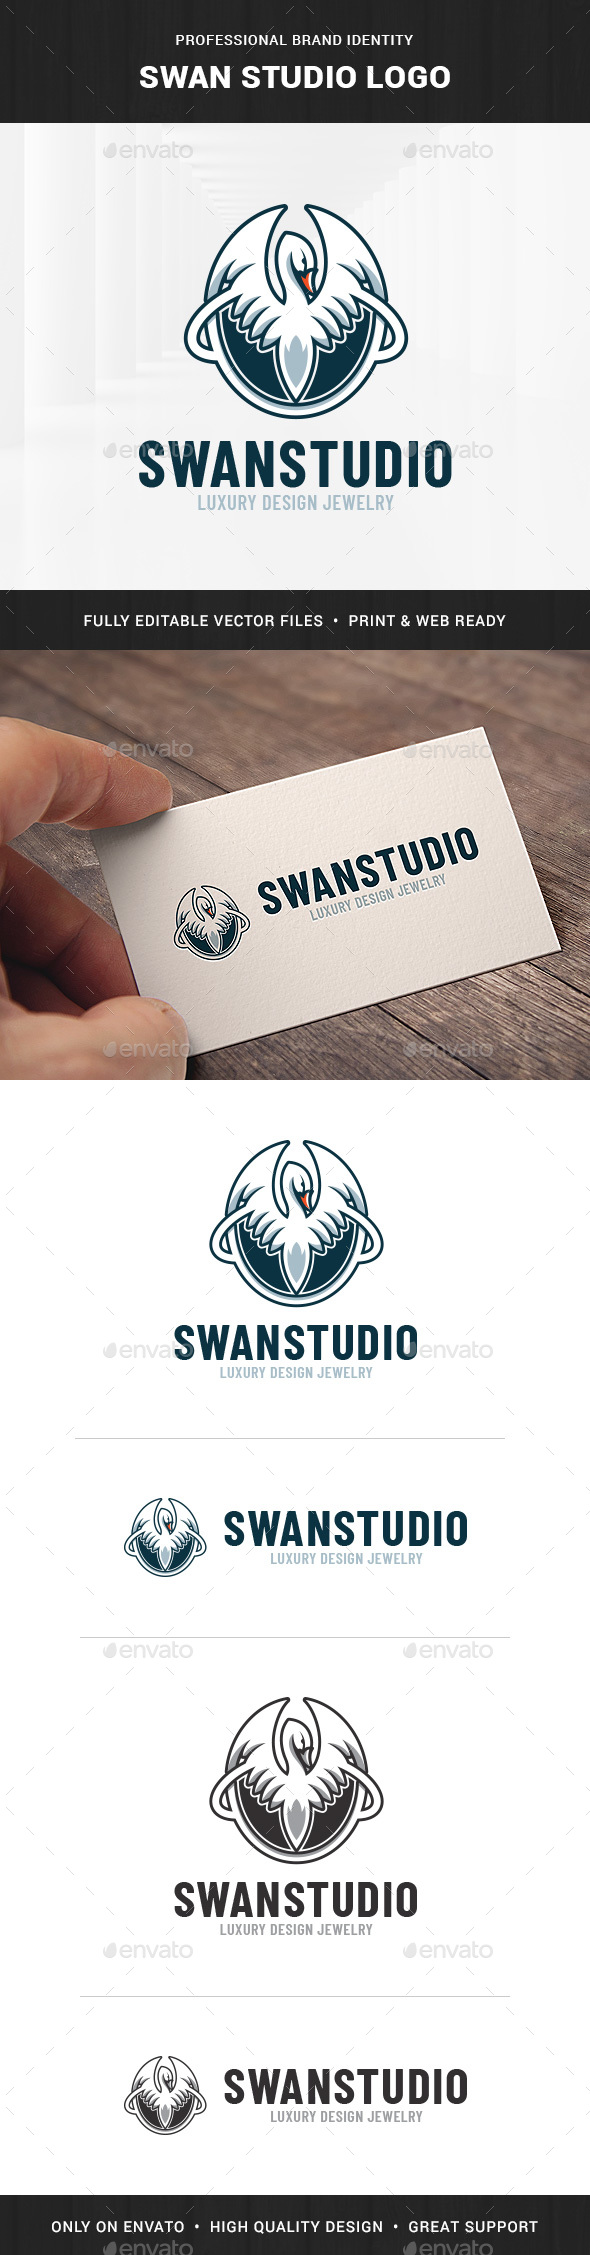 Swan Studio Logo Template - Animals Logo Templates